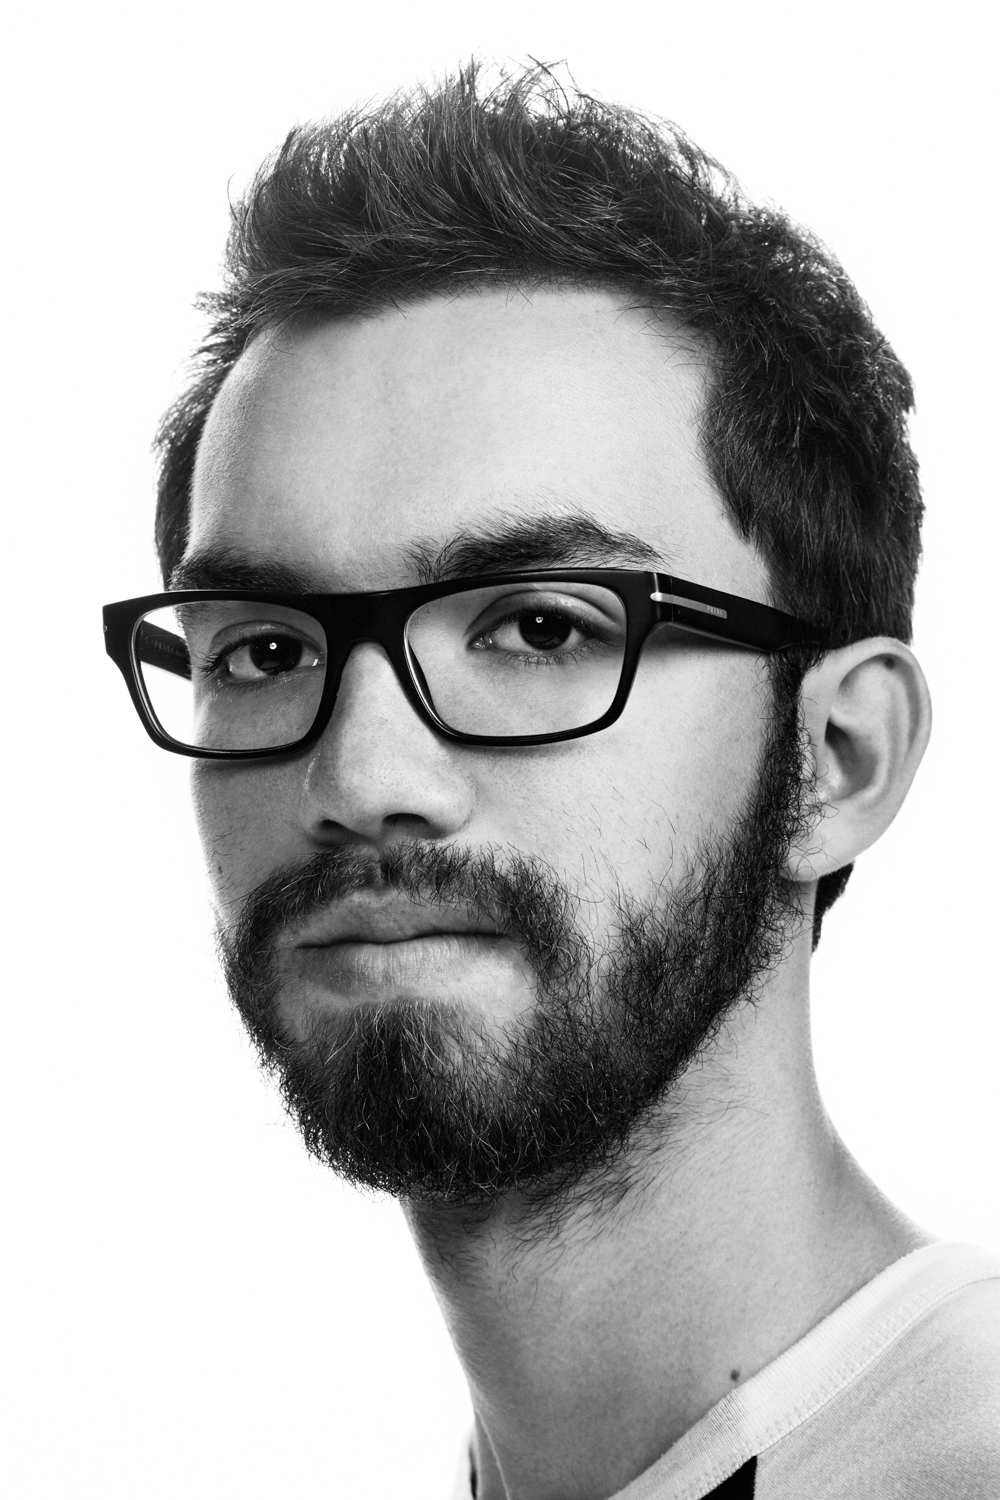 Man on white background, studio photography, black and white portraits, hipster with glasess